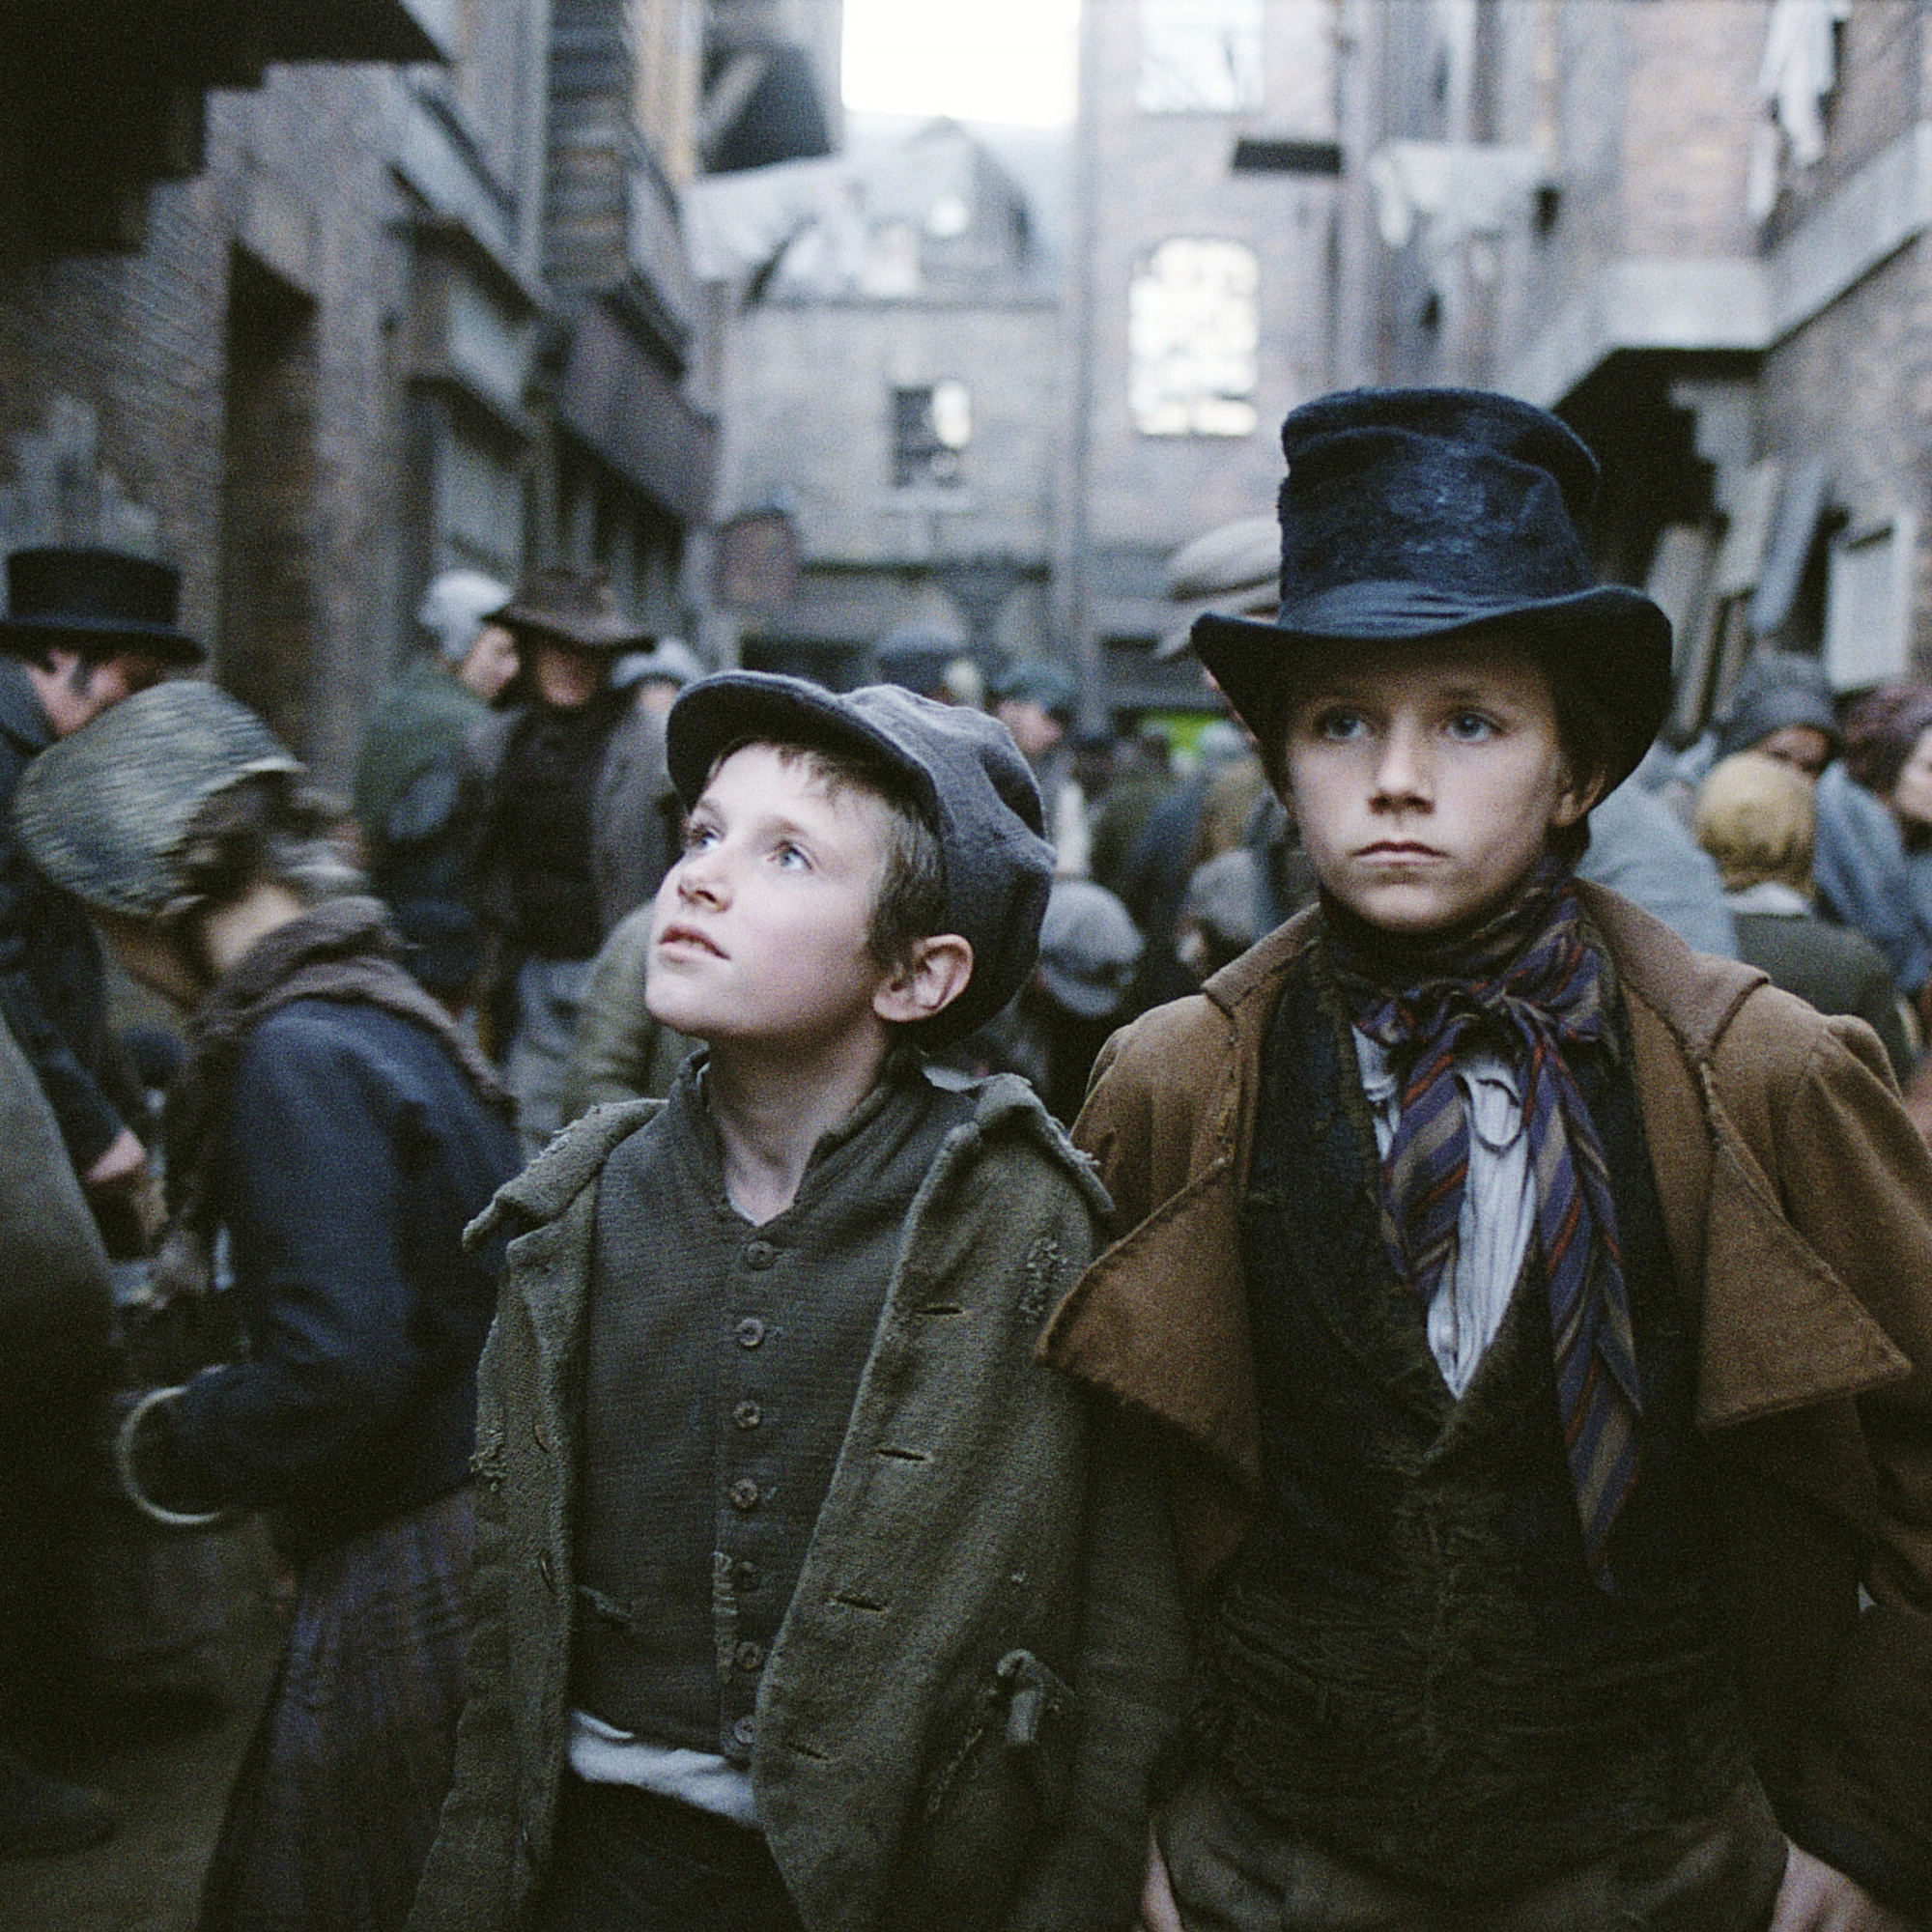 Oliver Twist. 2005. Great Britain/Italy/Czech Republic. Directed by Roman Polanski